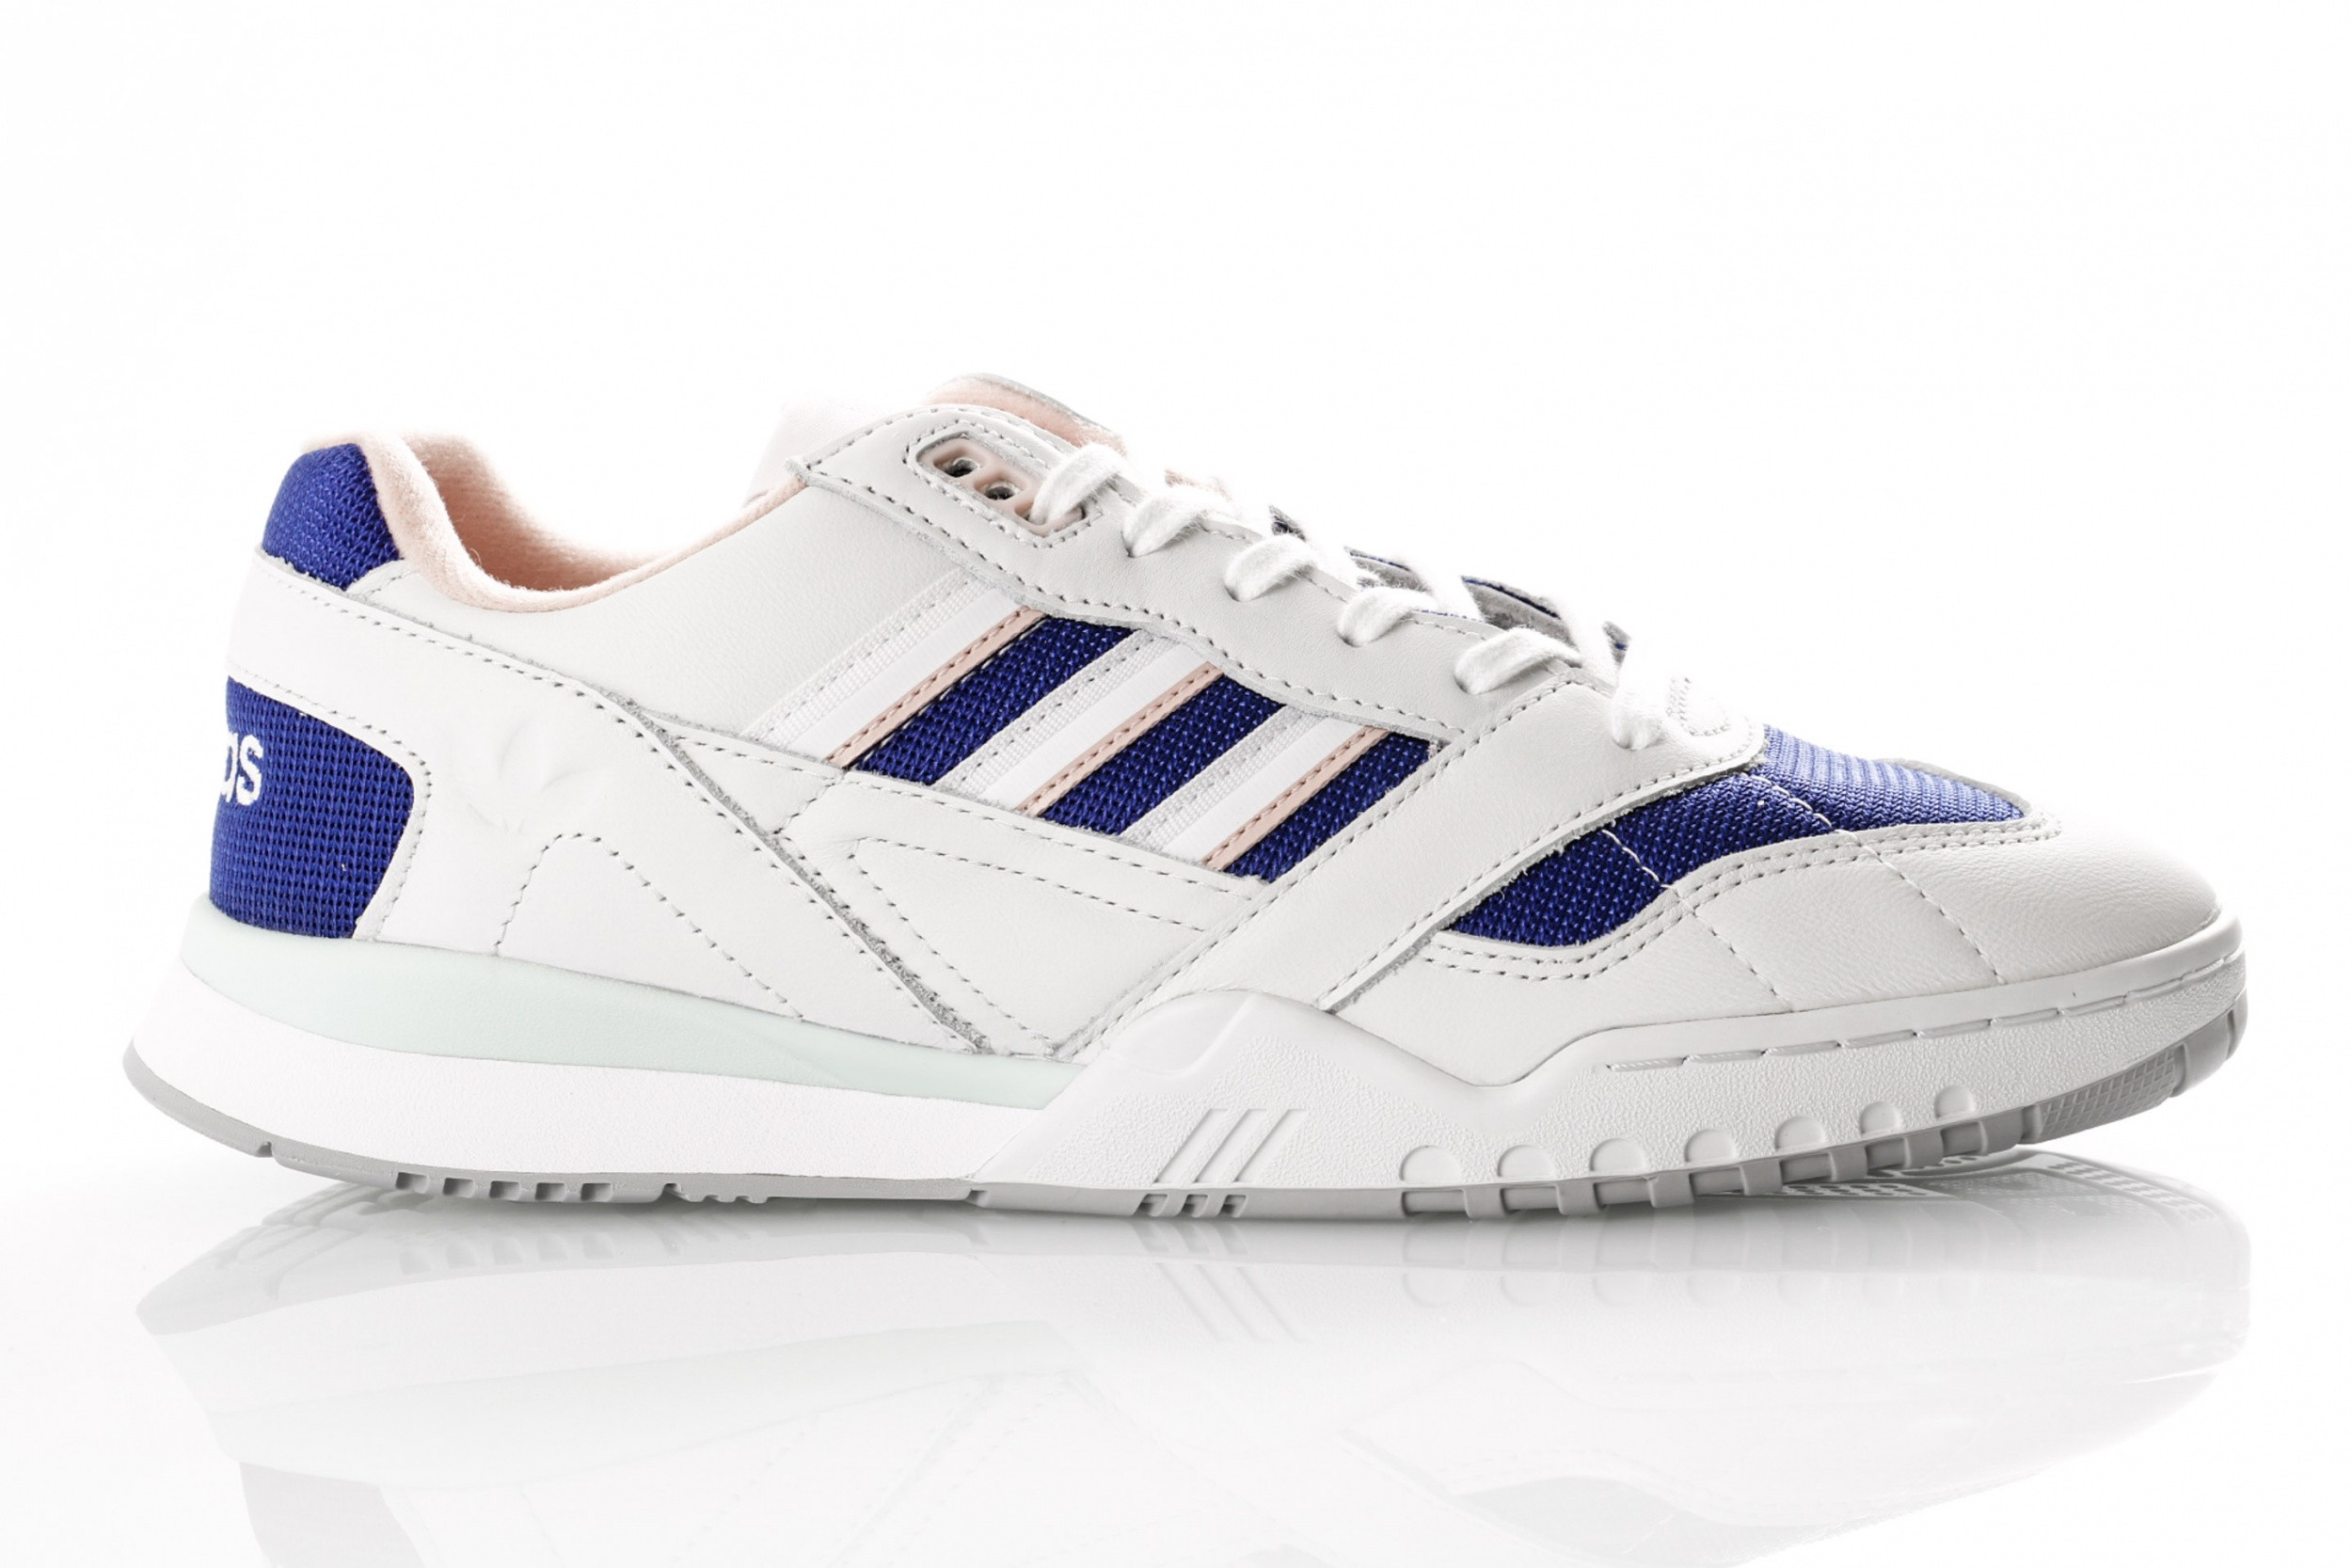 7688f0168e5 Adidas A.R. Trainer EF1628 Sneakers Off White/Ftwr White/Real Purple S18